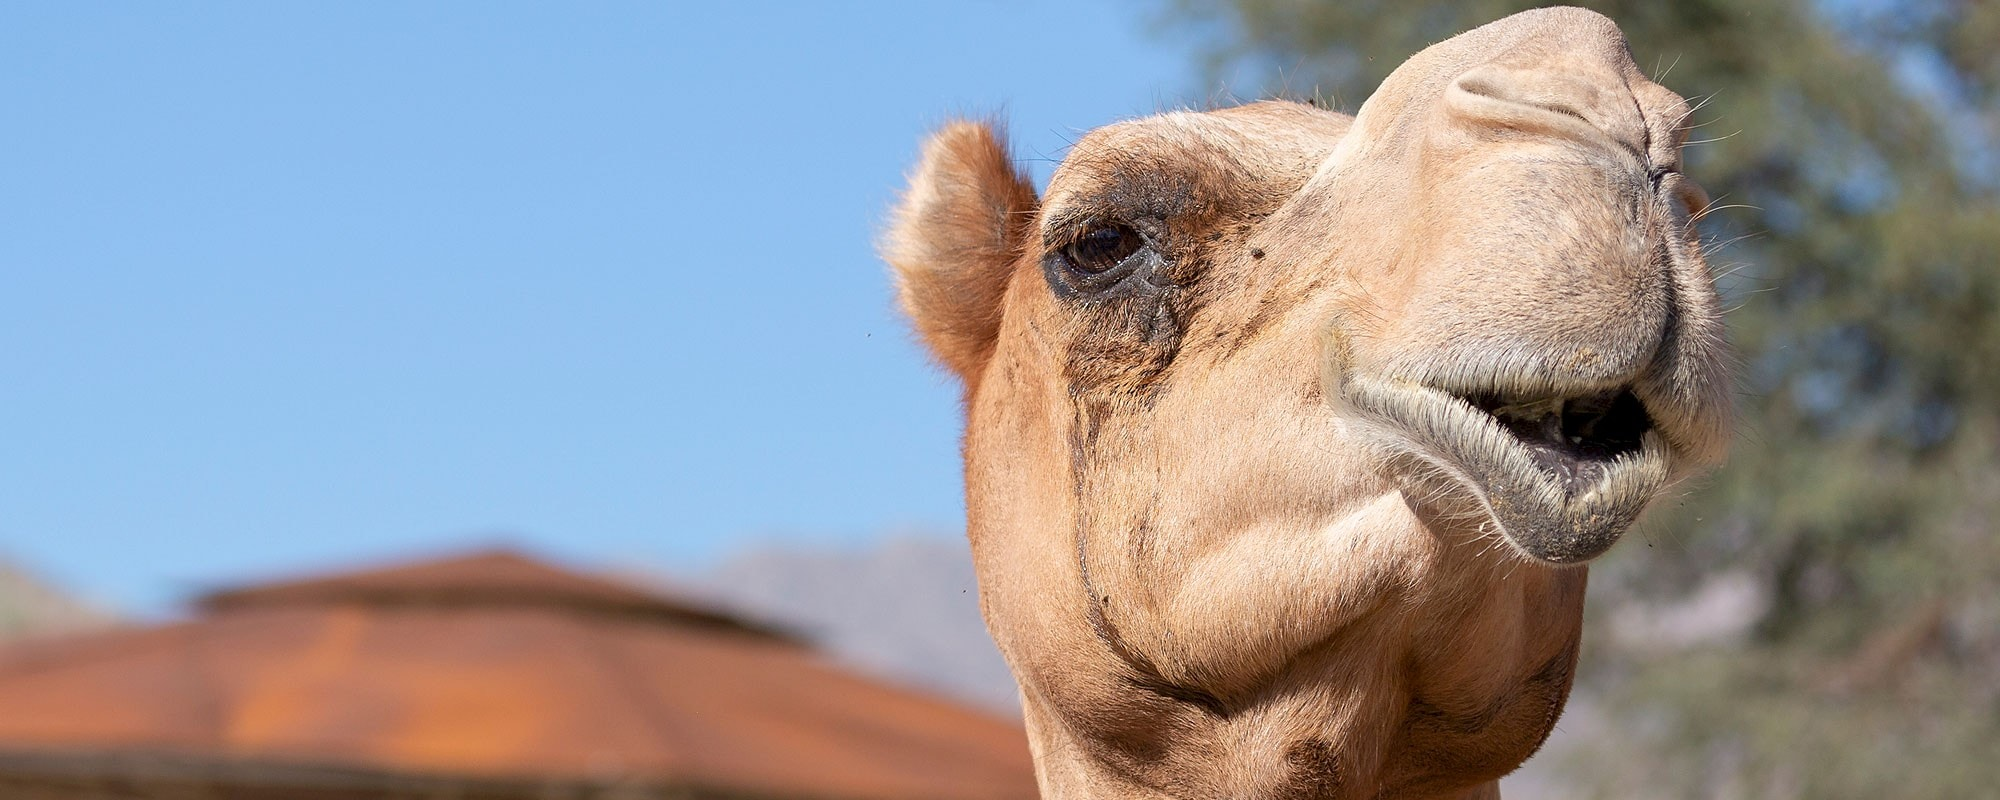 Say hi to our camels!